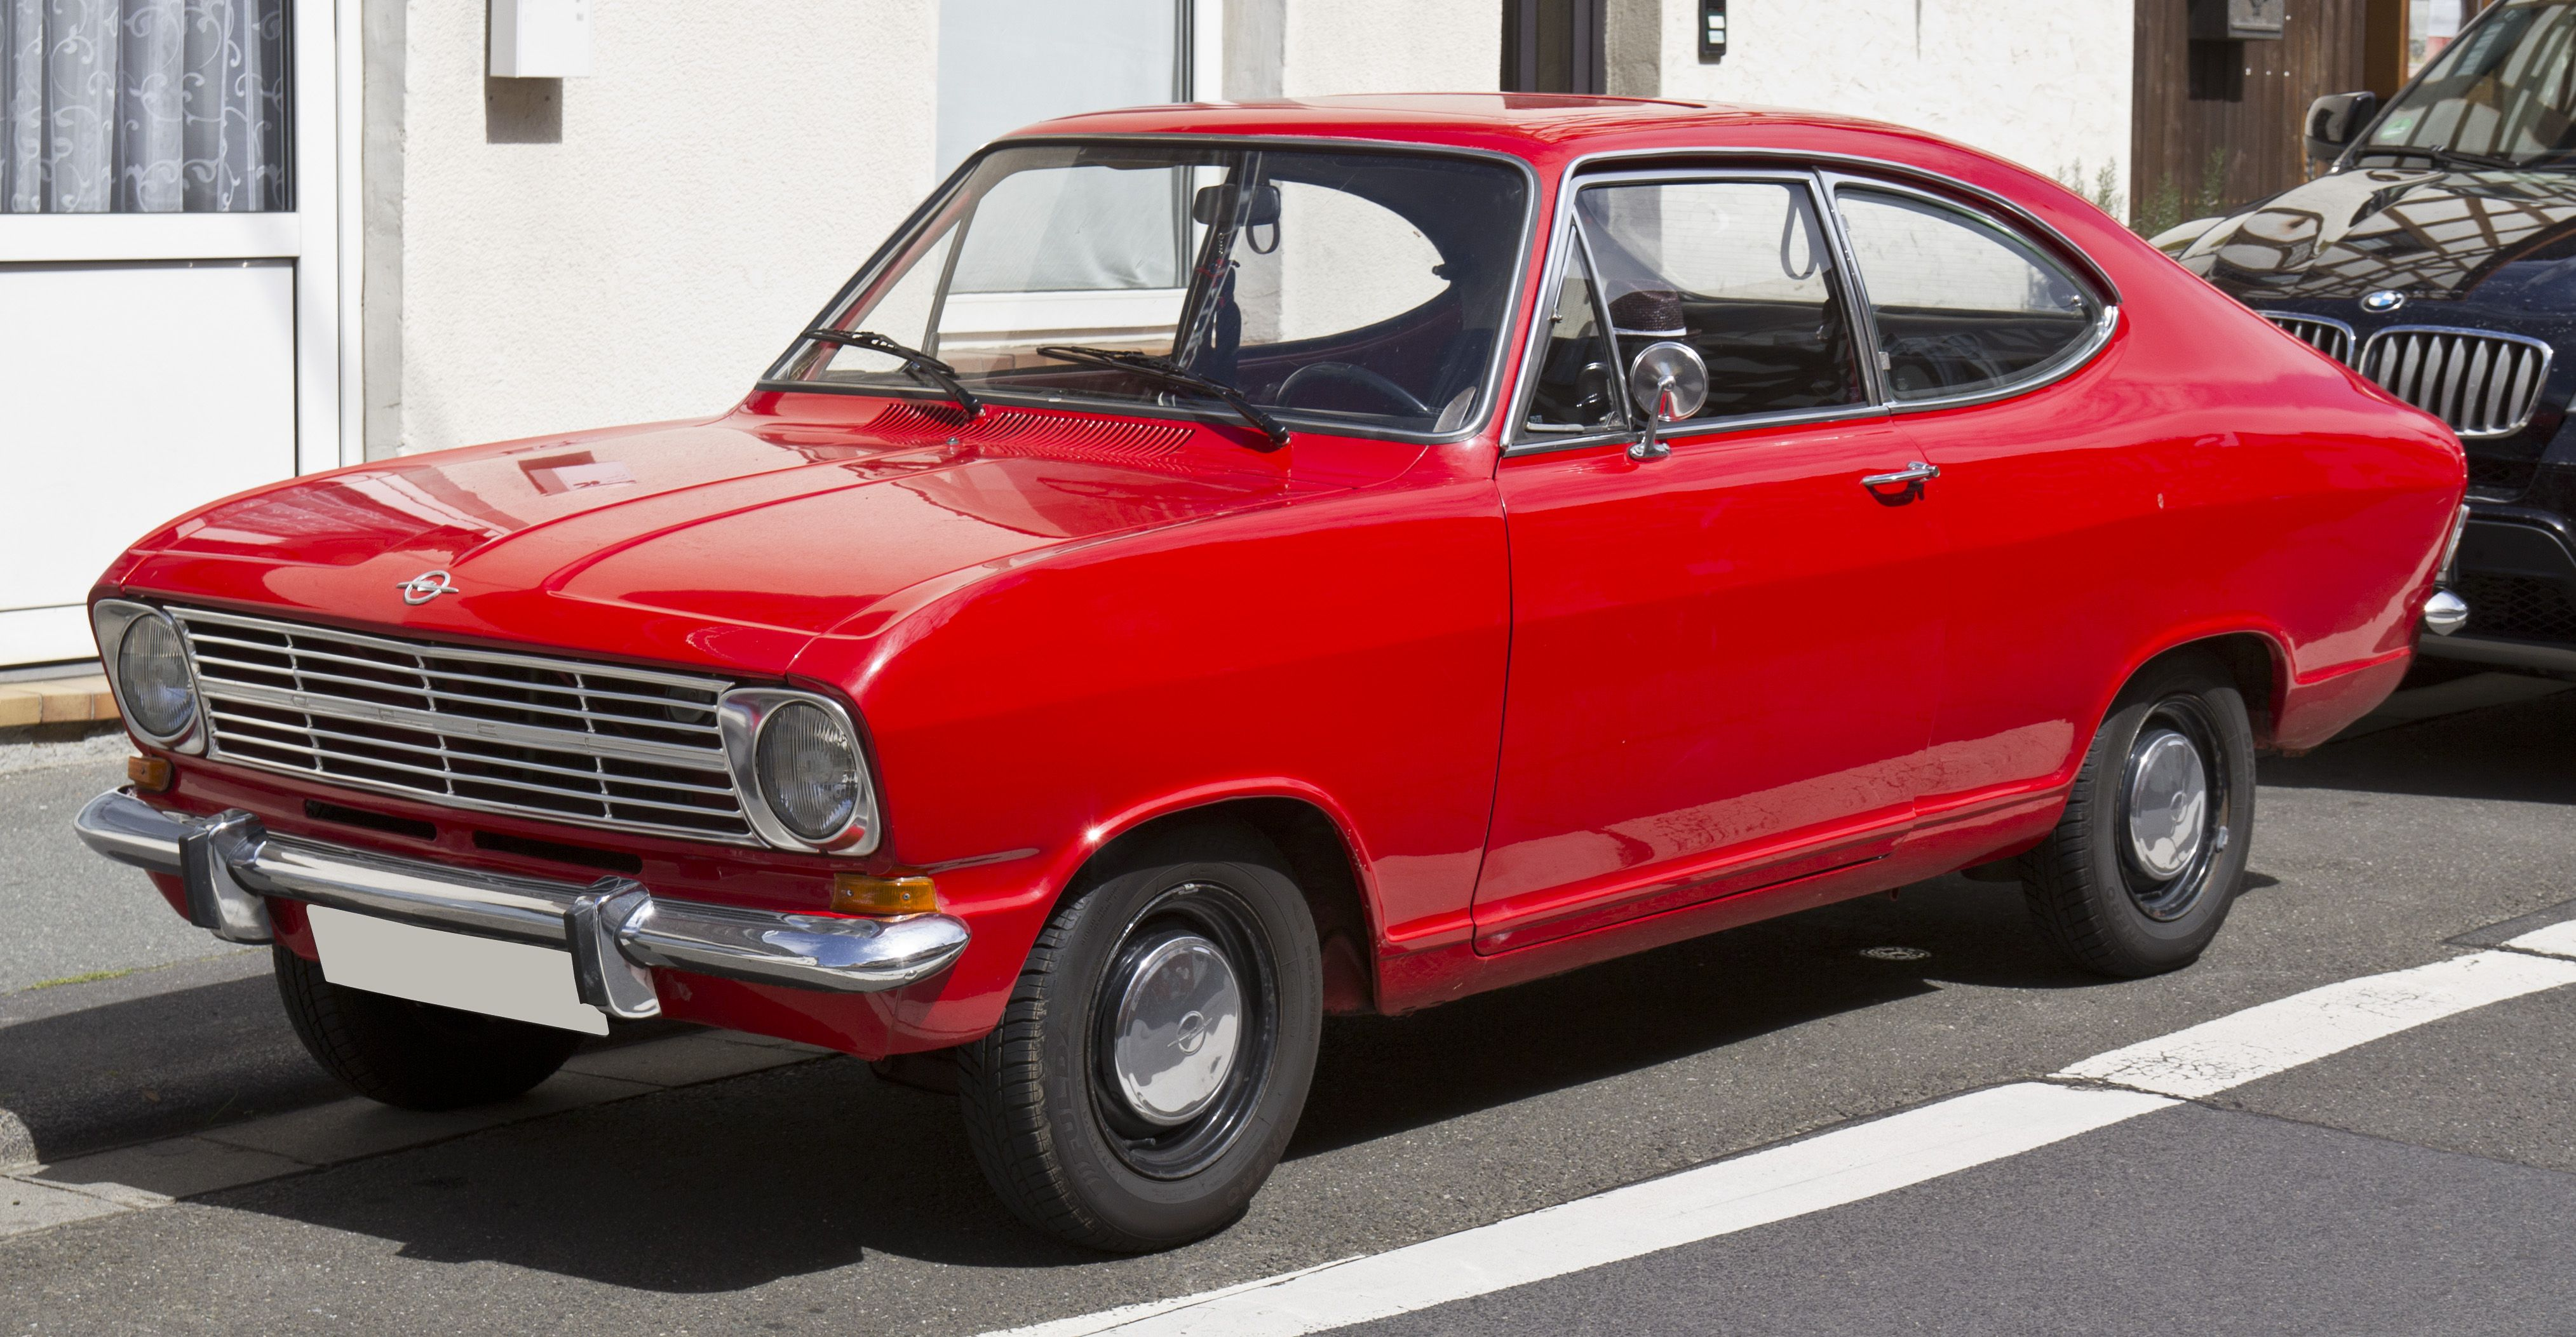 opel kadett b coup opel cars automobile coupe. Black Bedroom Furniture Sets. Home Design Ideas